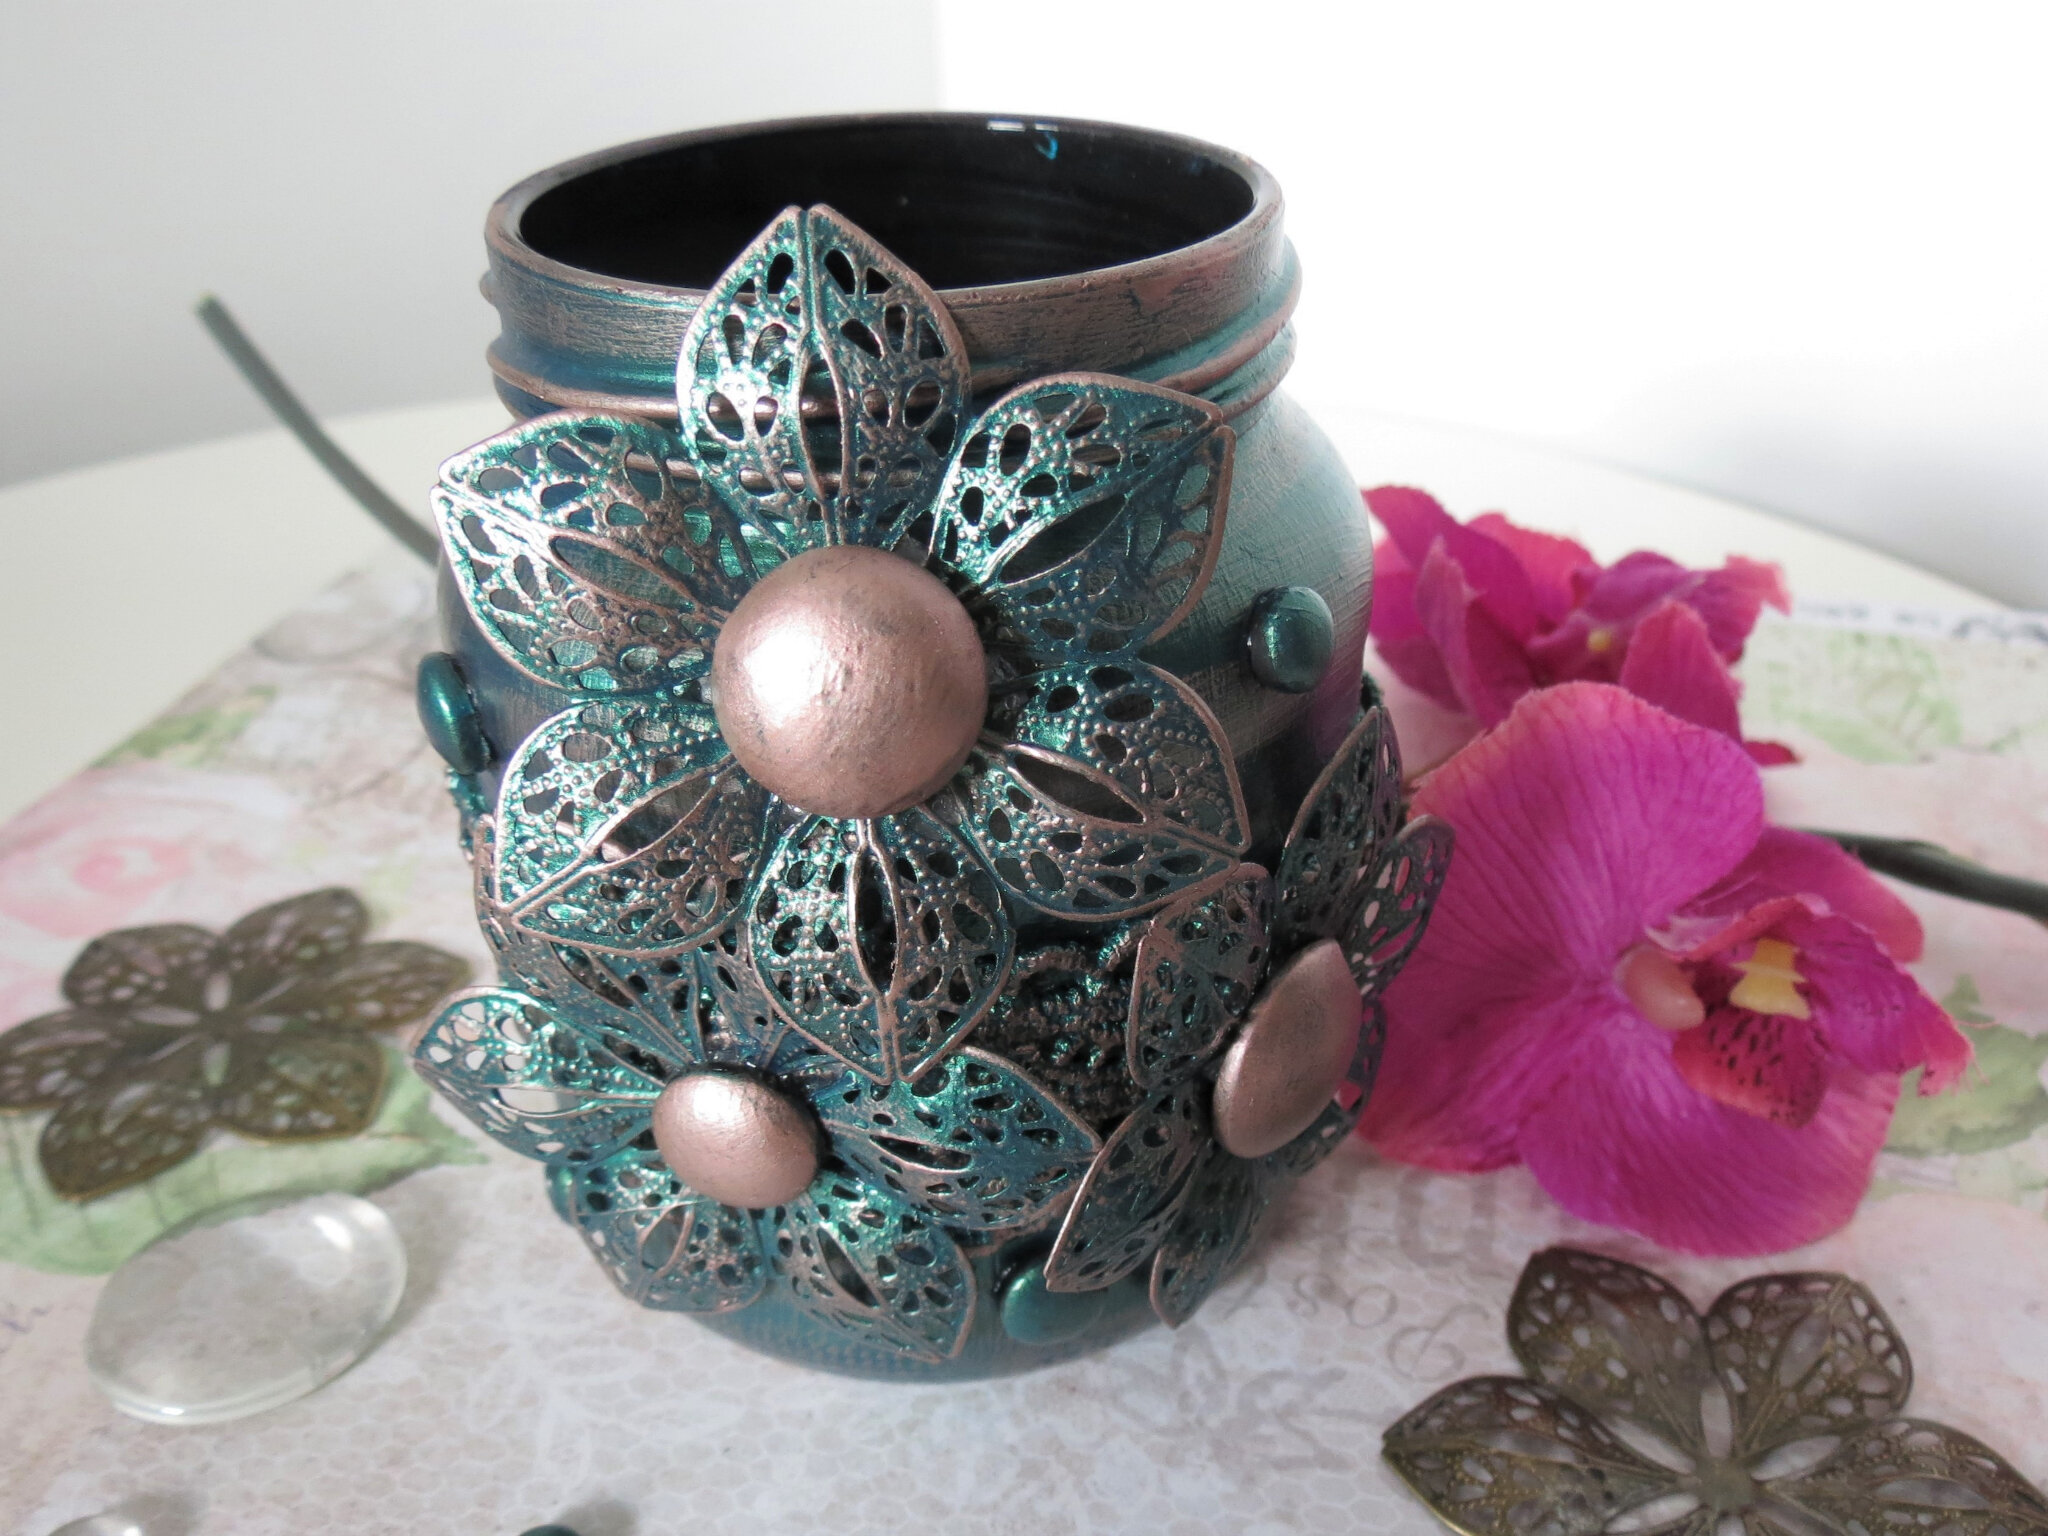 Altered brush jar - Creative Artiste and Art daily challenges